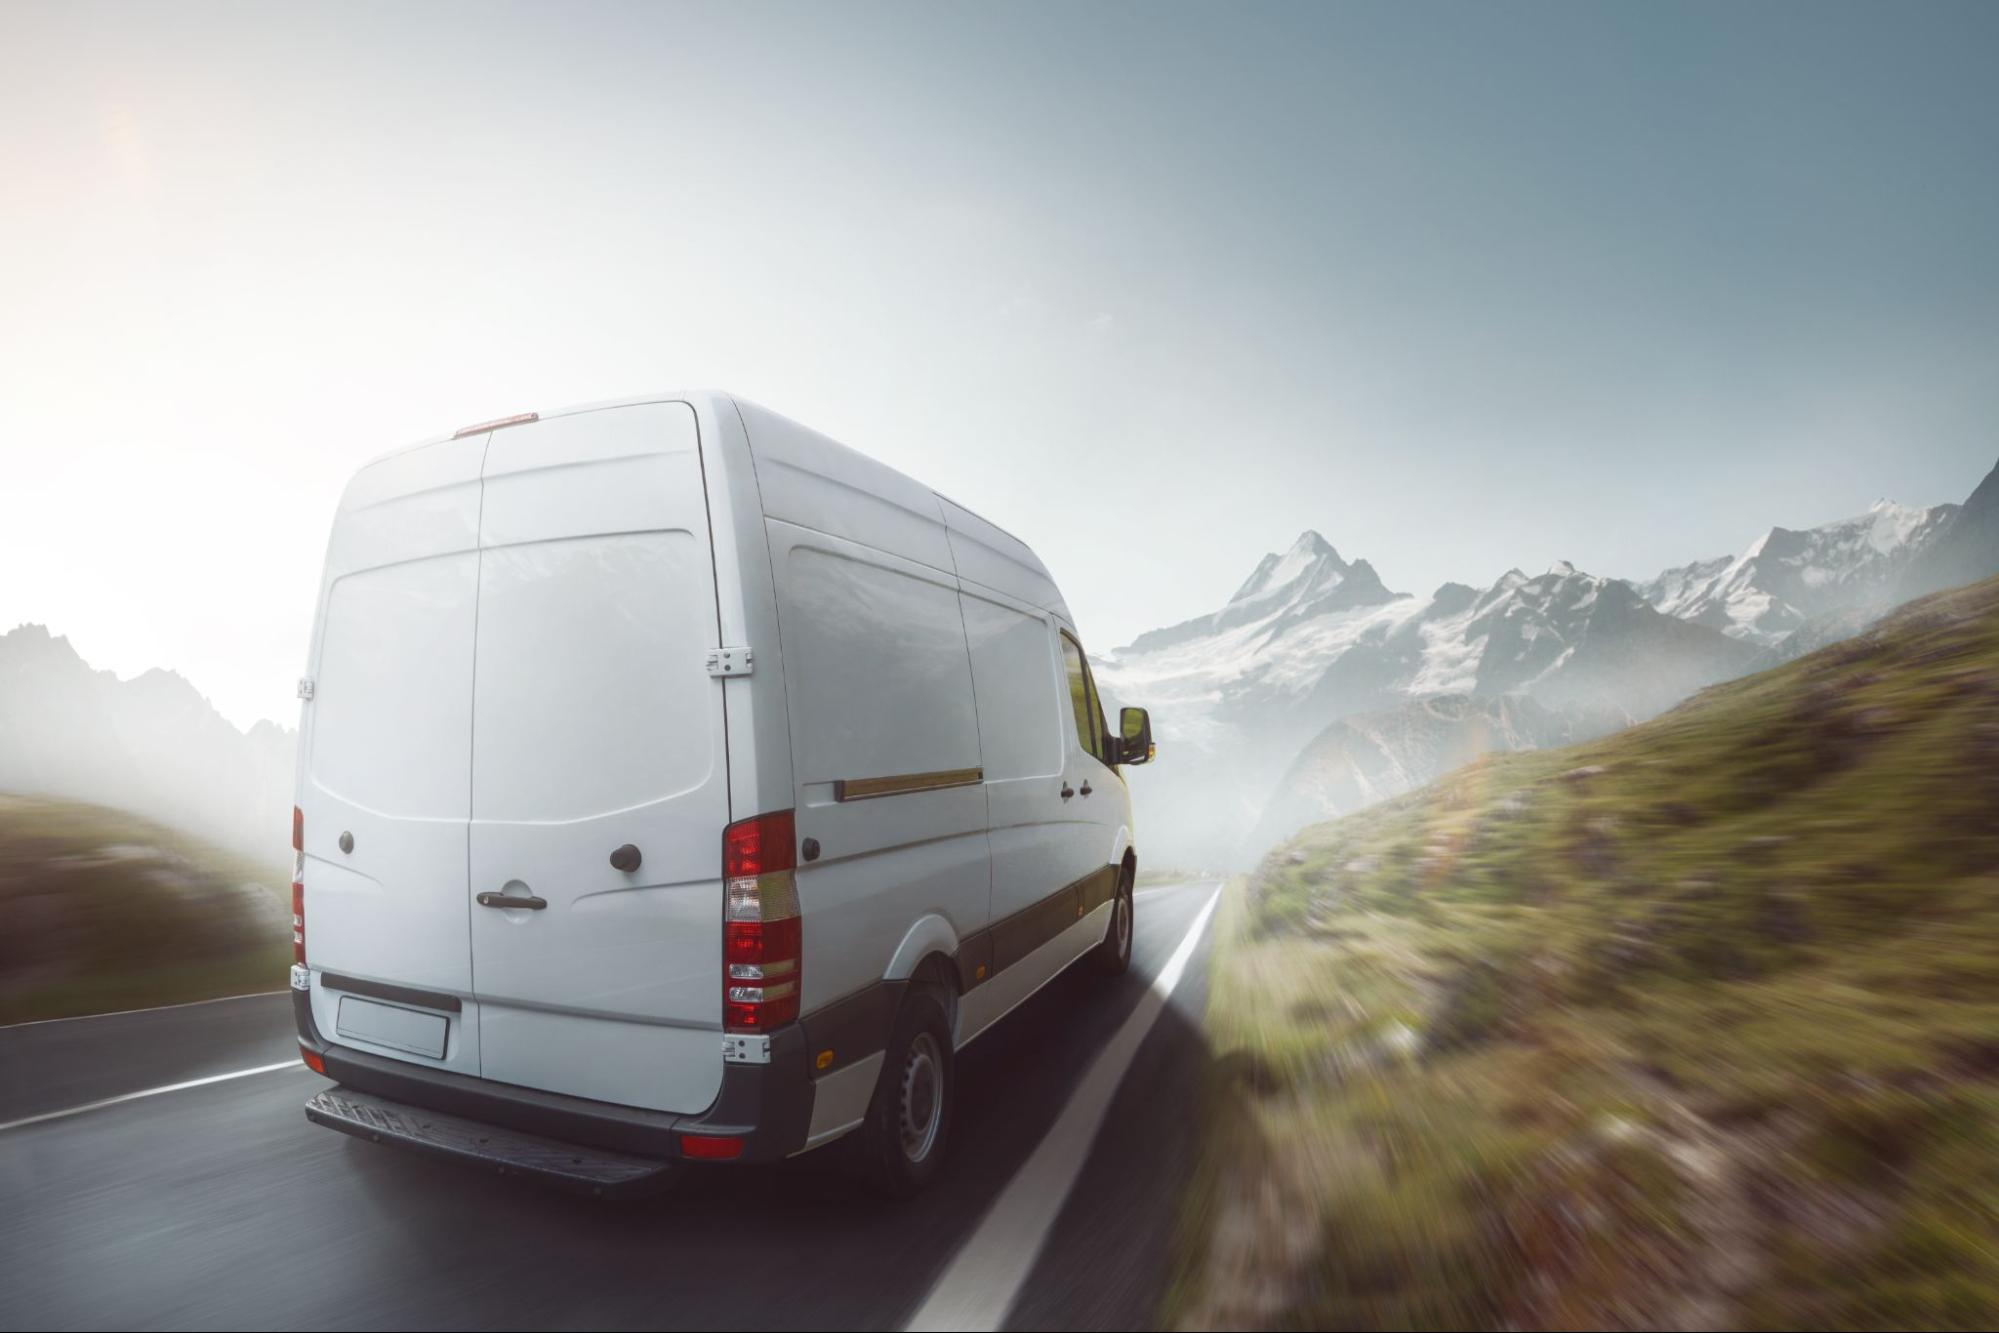 A commercial vehicle driving into a foggy road